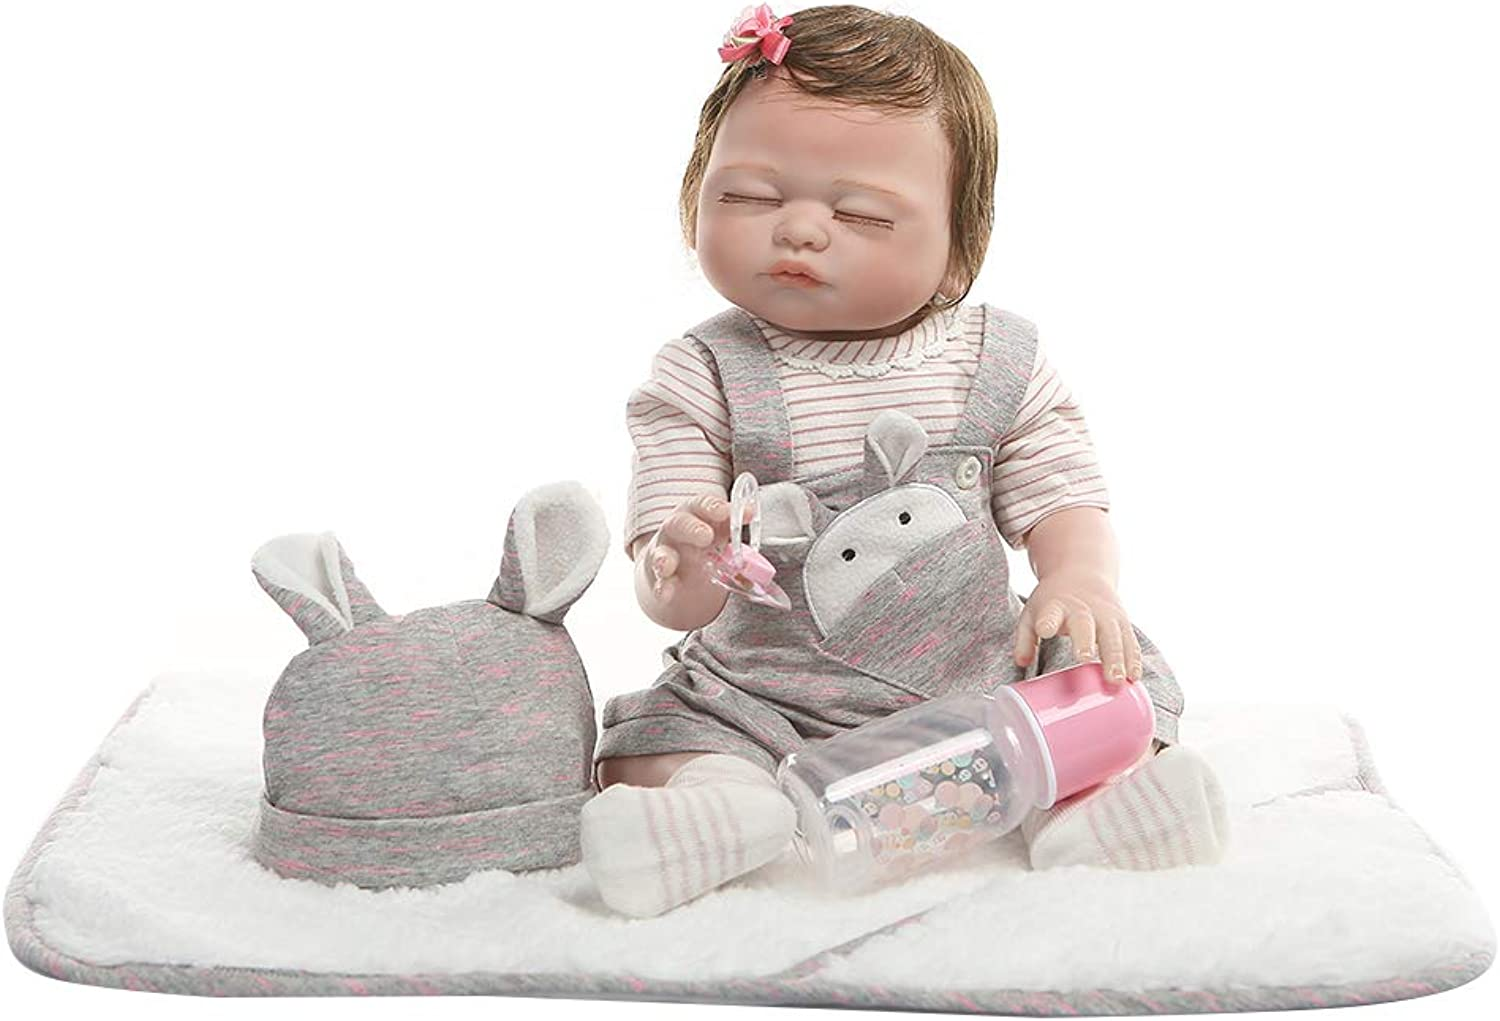 Huiouer 19in Reborn Doll Realistic Full Silicone Vinyl Newborn Baby Toy Girl Princess Clothes Pacifier